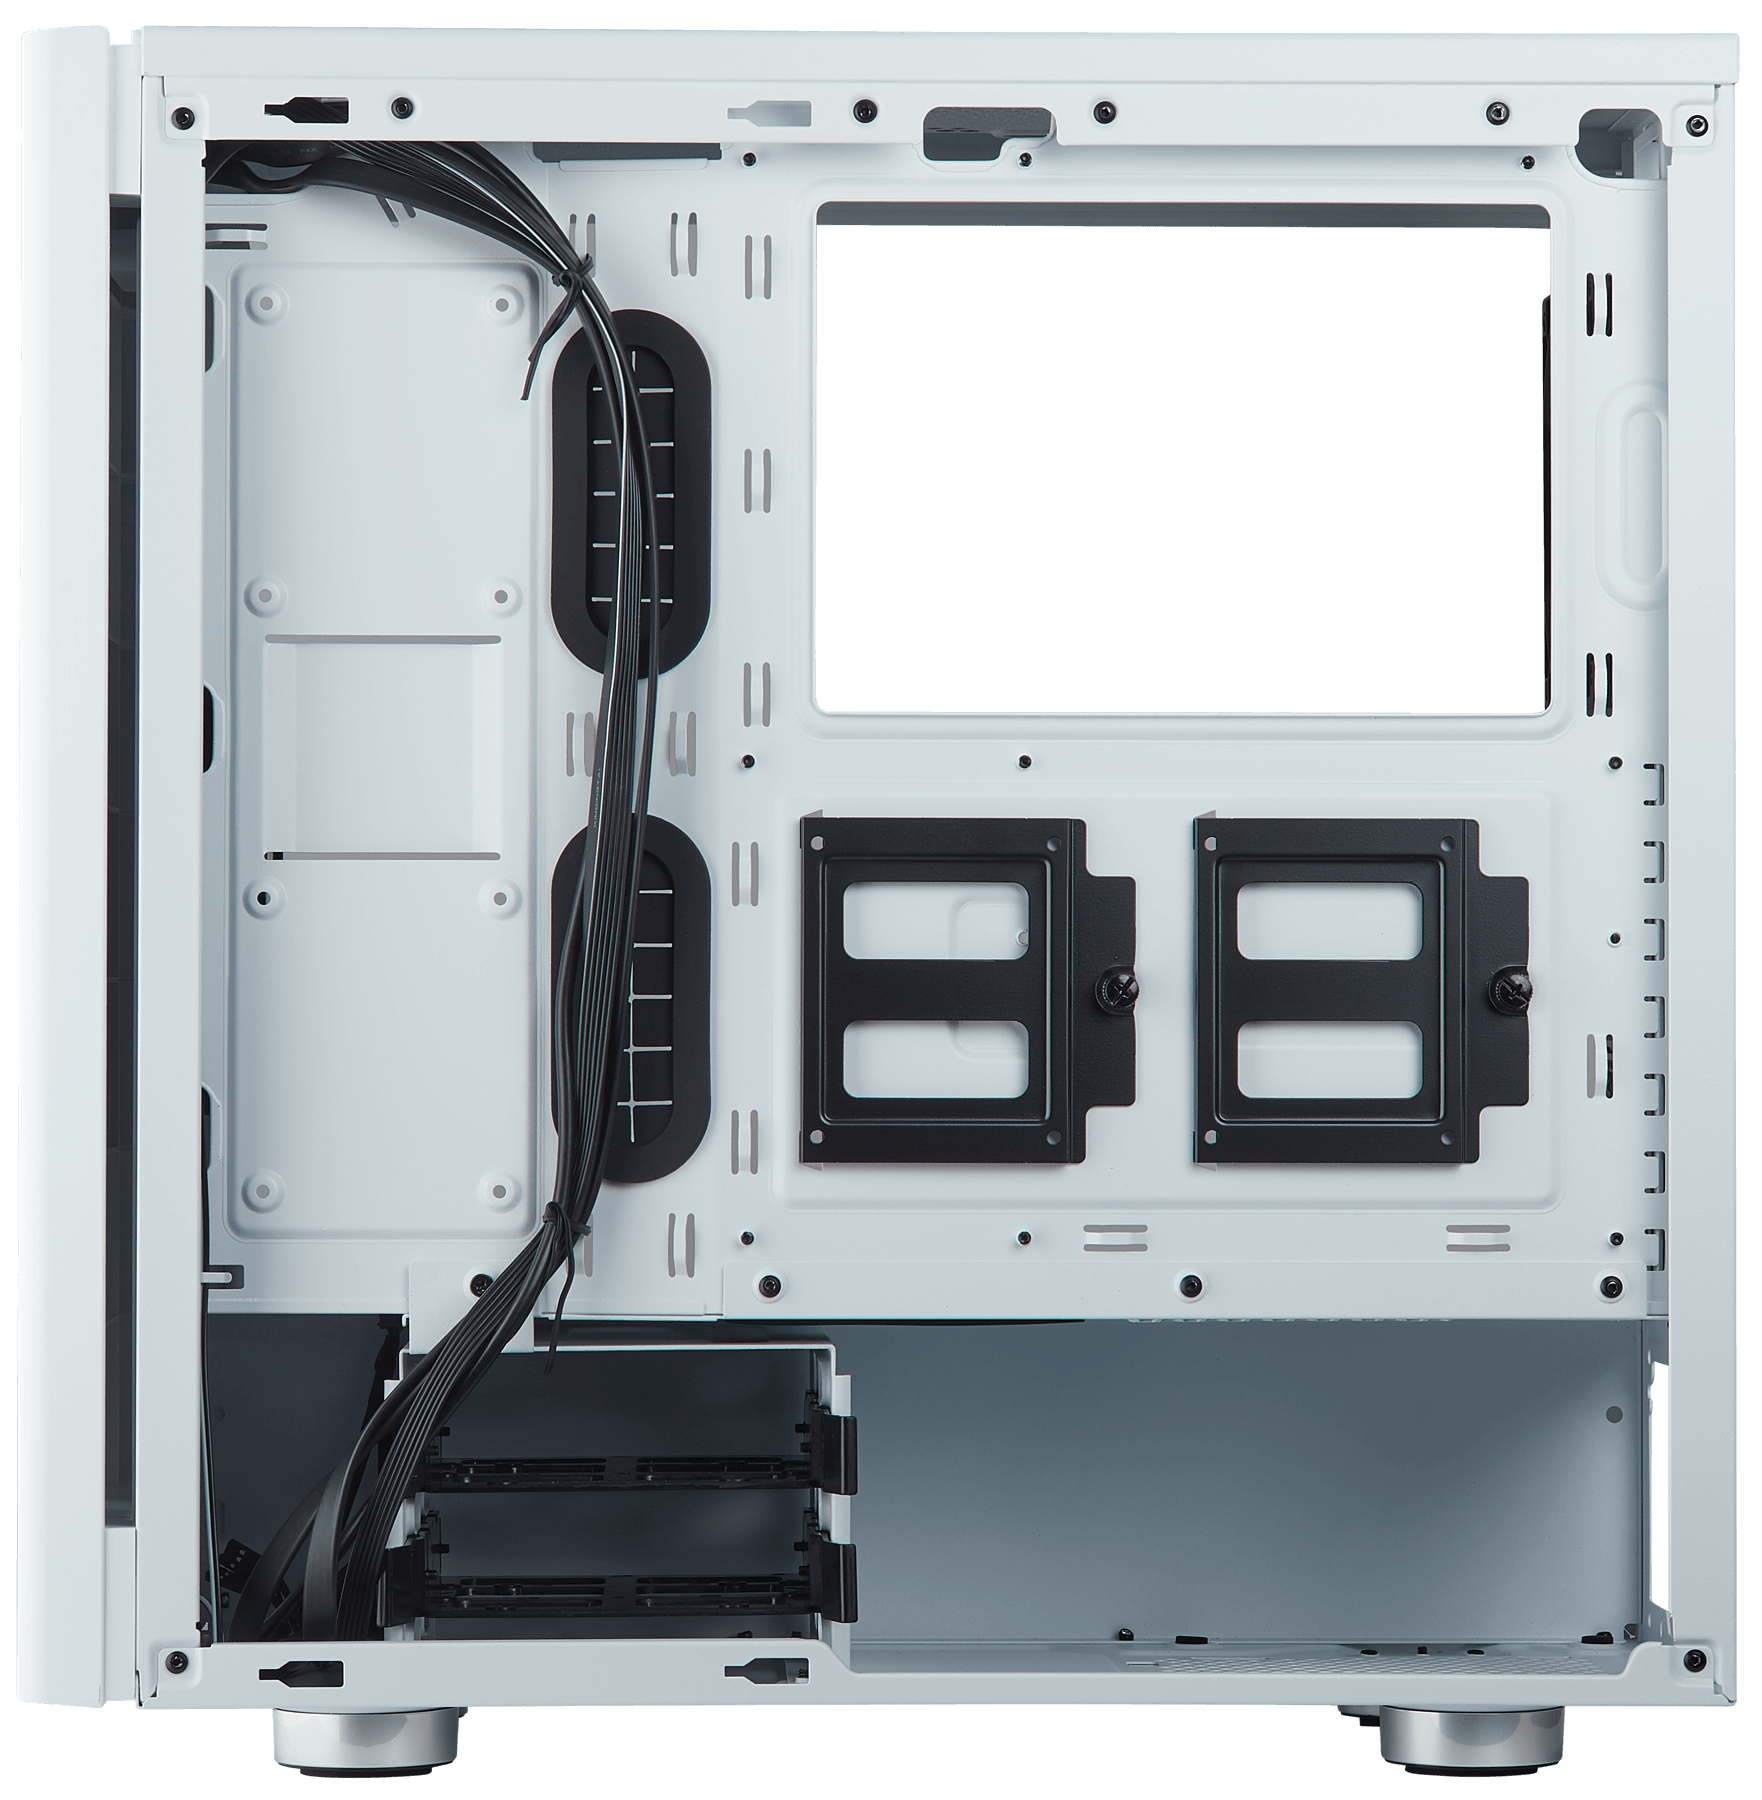 Carbide Series 275r Tempered Glass Mid Tower Gaming Case White Corsair Cases Wiring Diagrams Expansive Storage Space